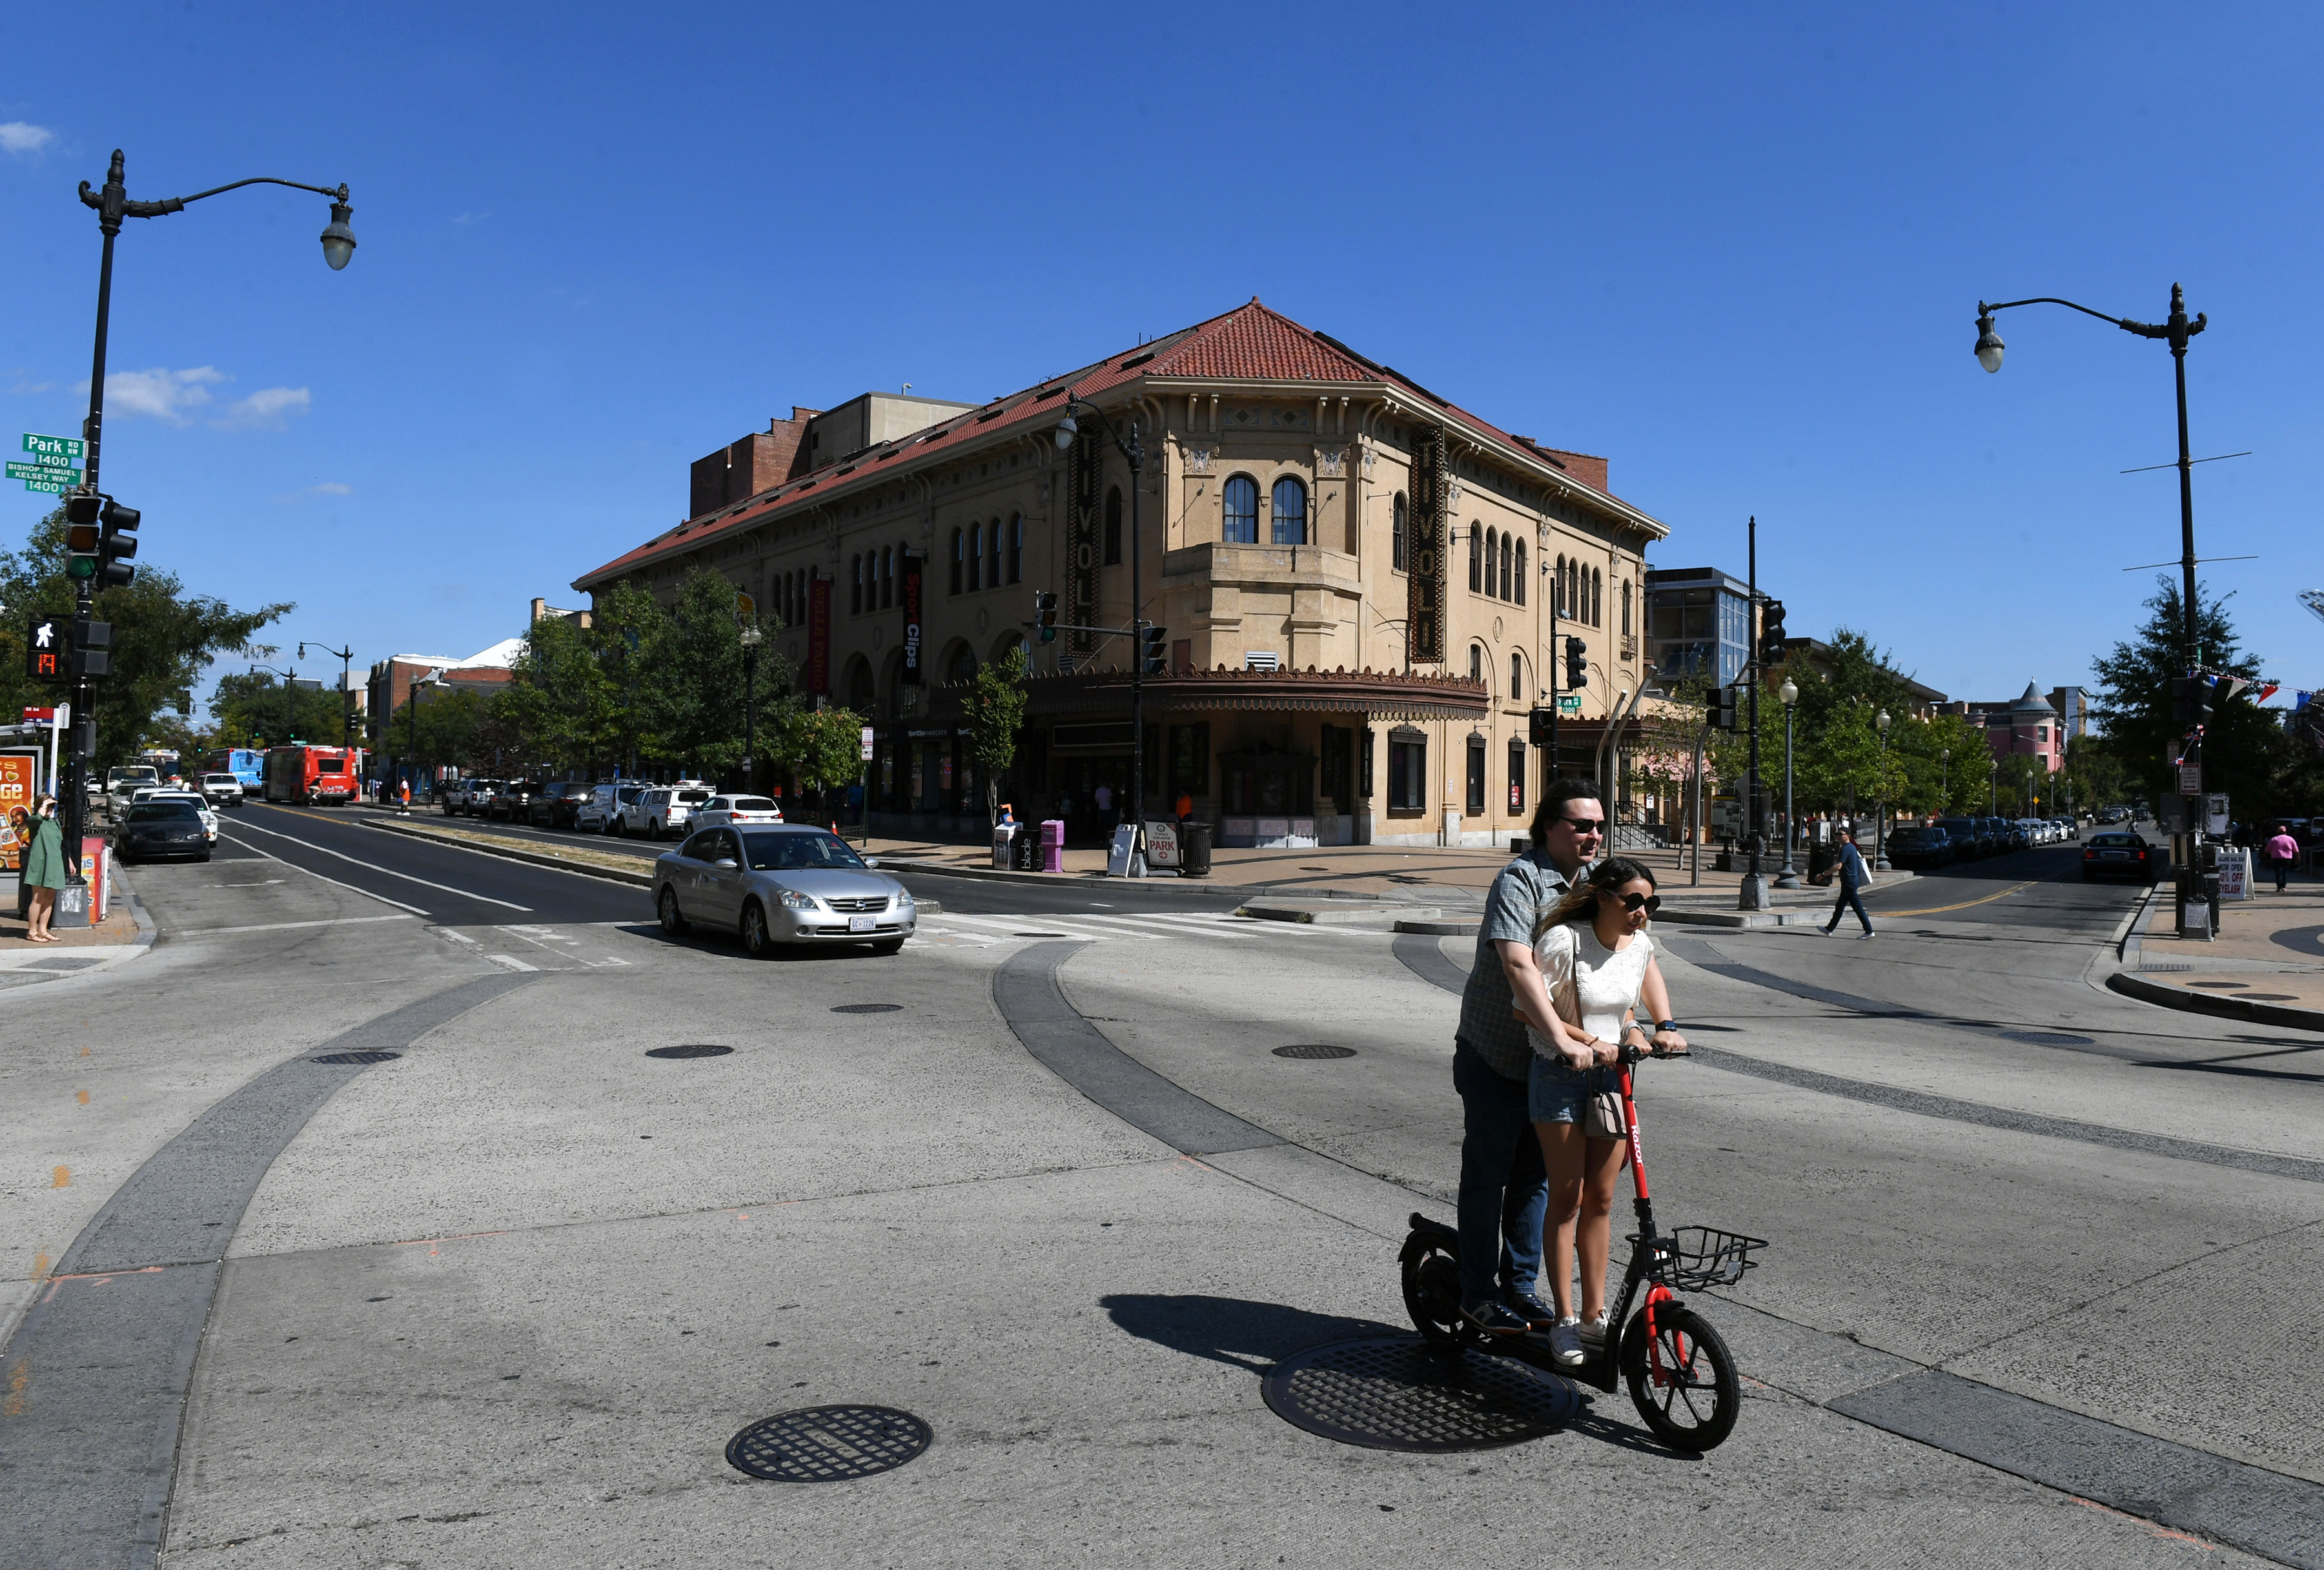 A couple rides an electric scooter through a city intersection. An old theater building stands in the background.